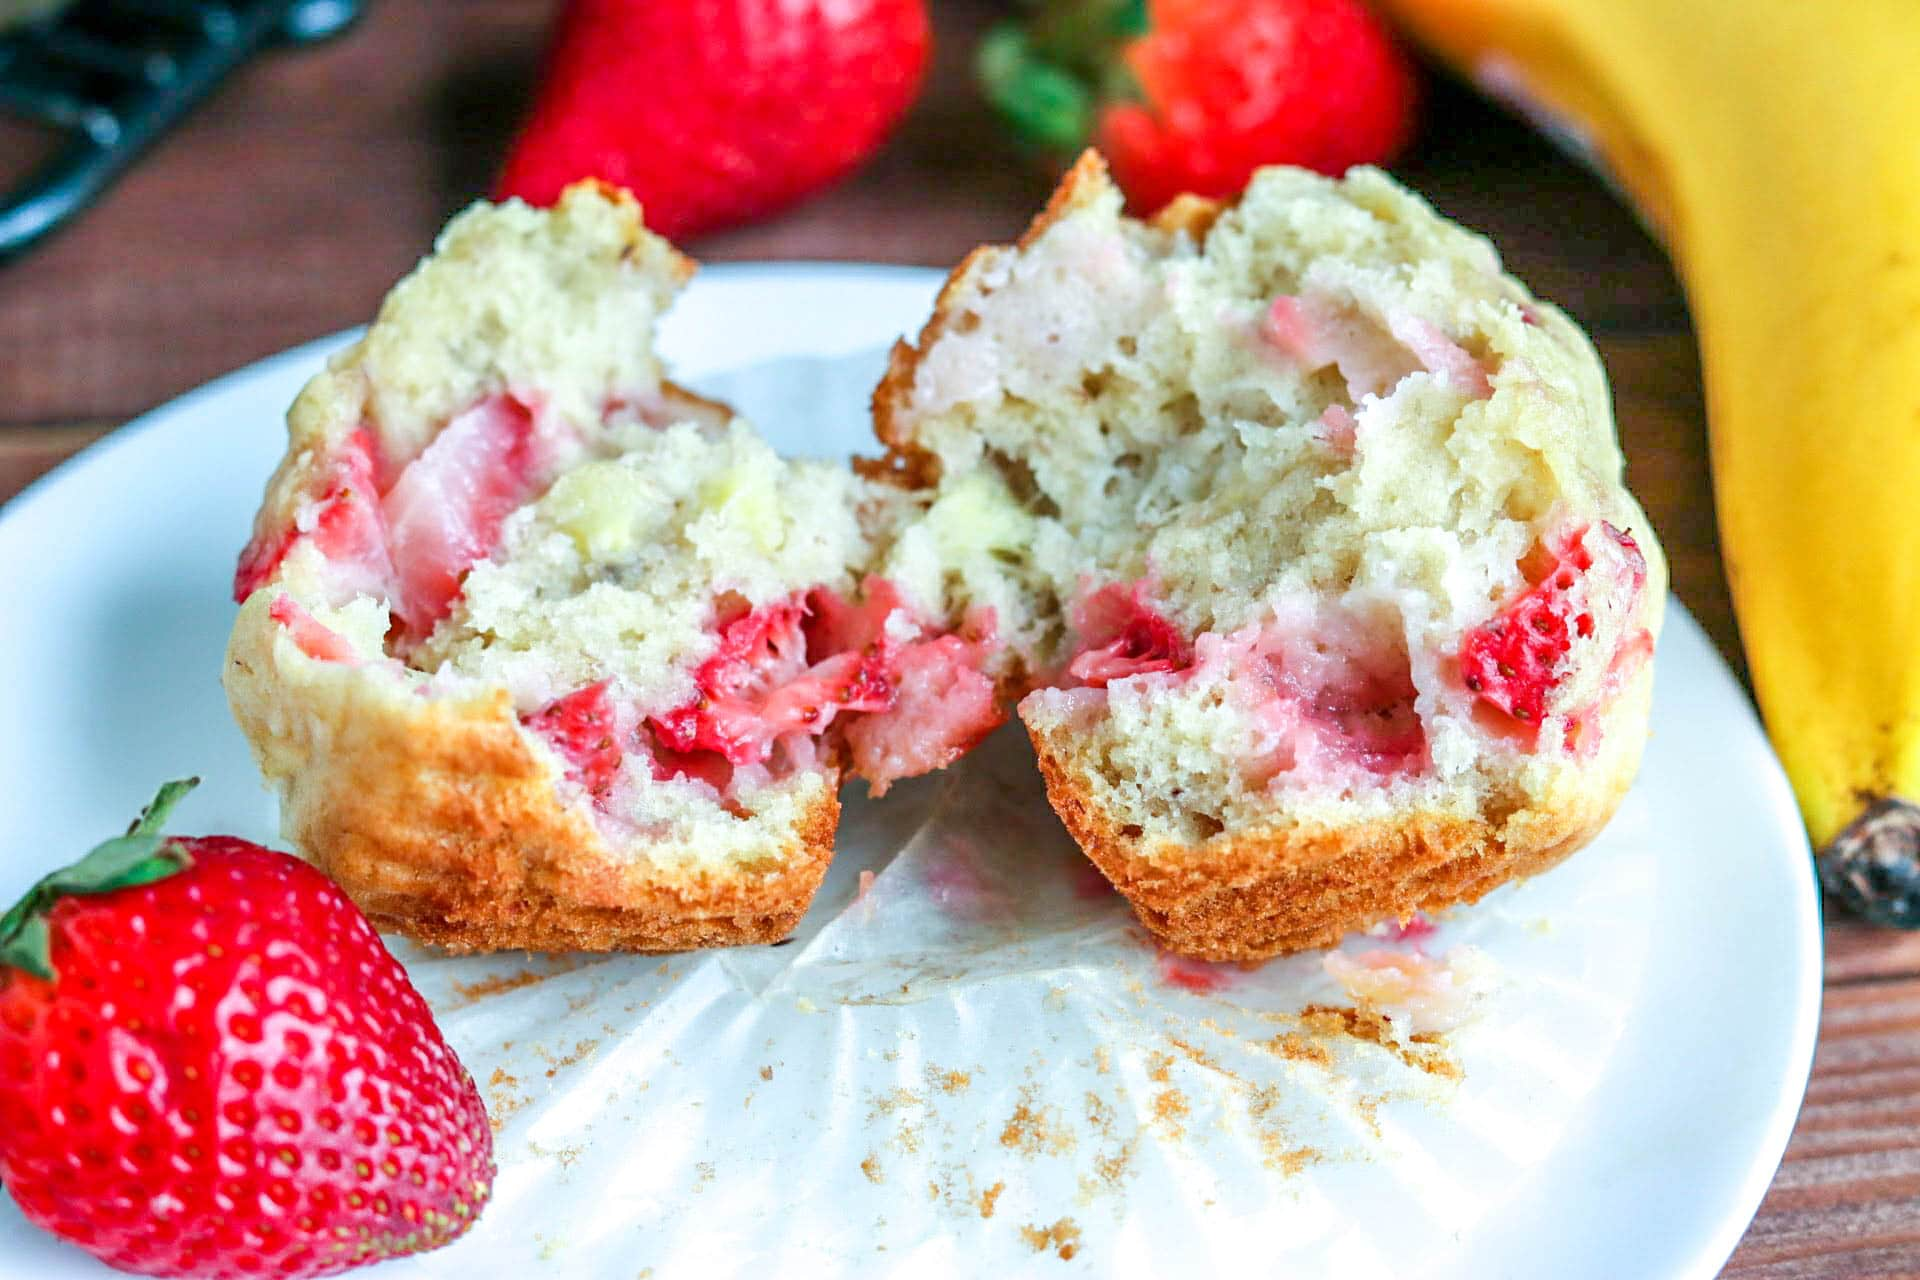 Fresh strawberry banana muffin pulled in half with strawberry on white plate with banana and strawberries in background on wooden plate.